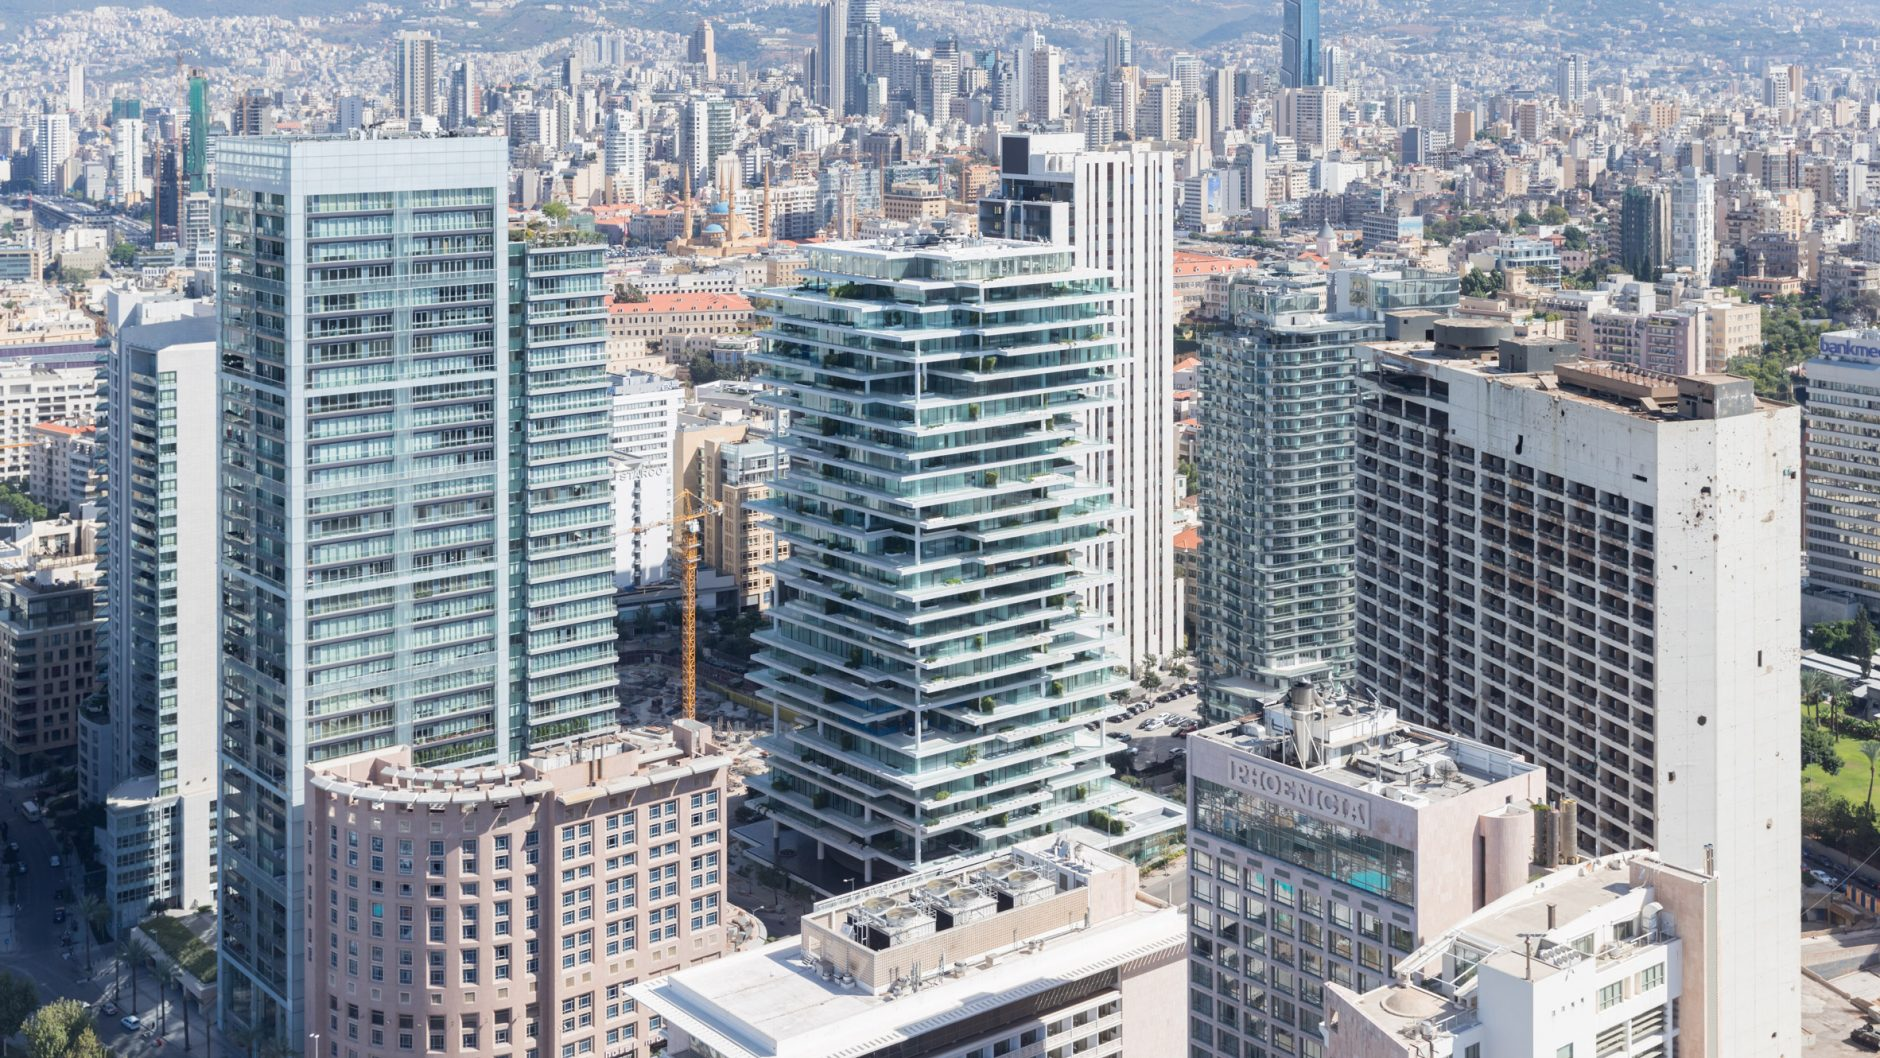 Beirut Terraces Are Designed As Vertically Layered Building.